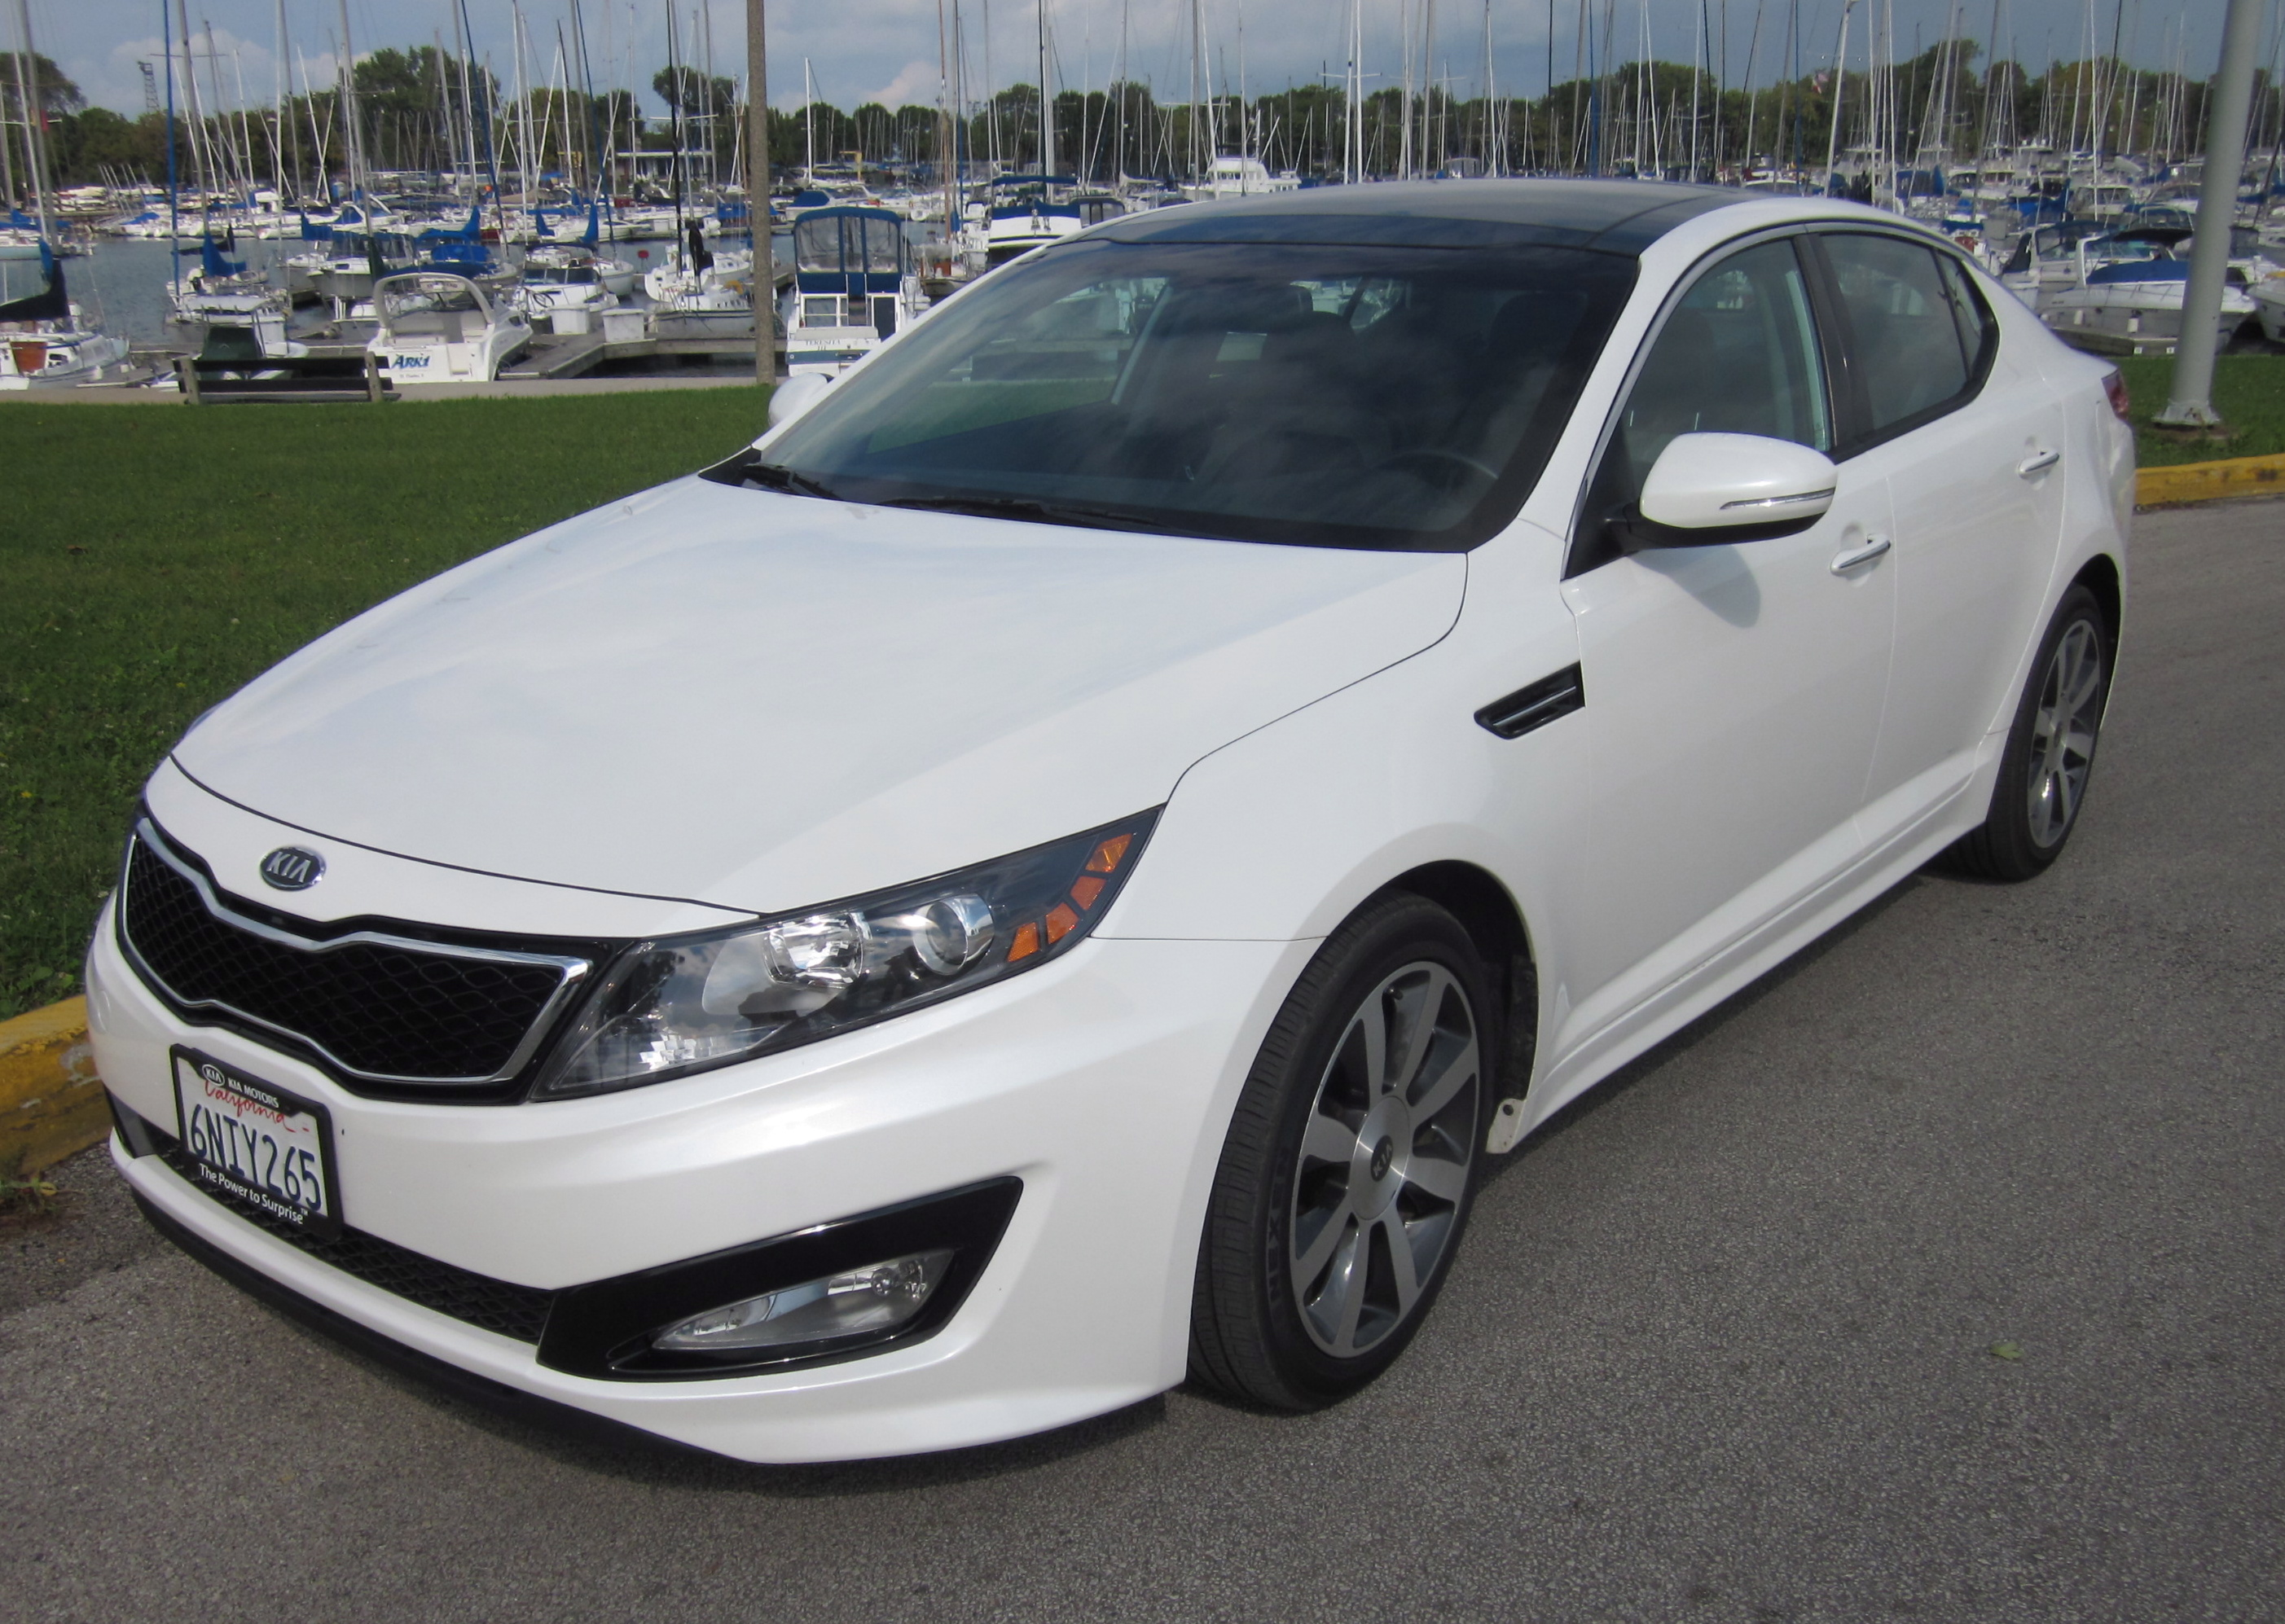 2012 Kia Optima Review Green Or Mean By Larry Nutson Video Rear View Camera